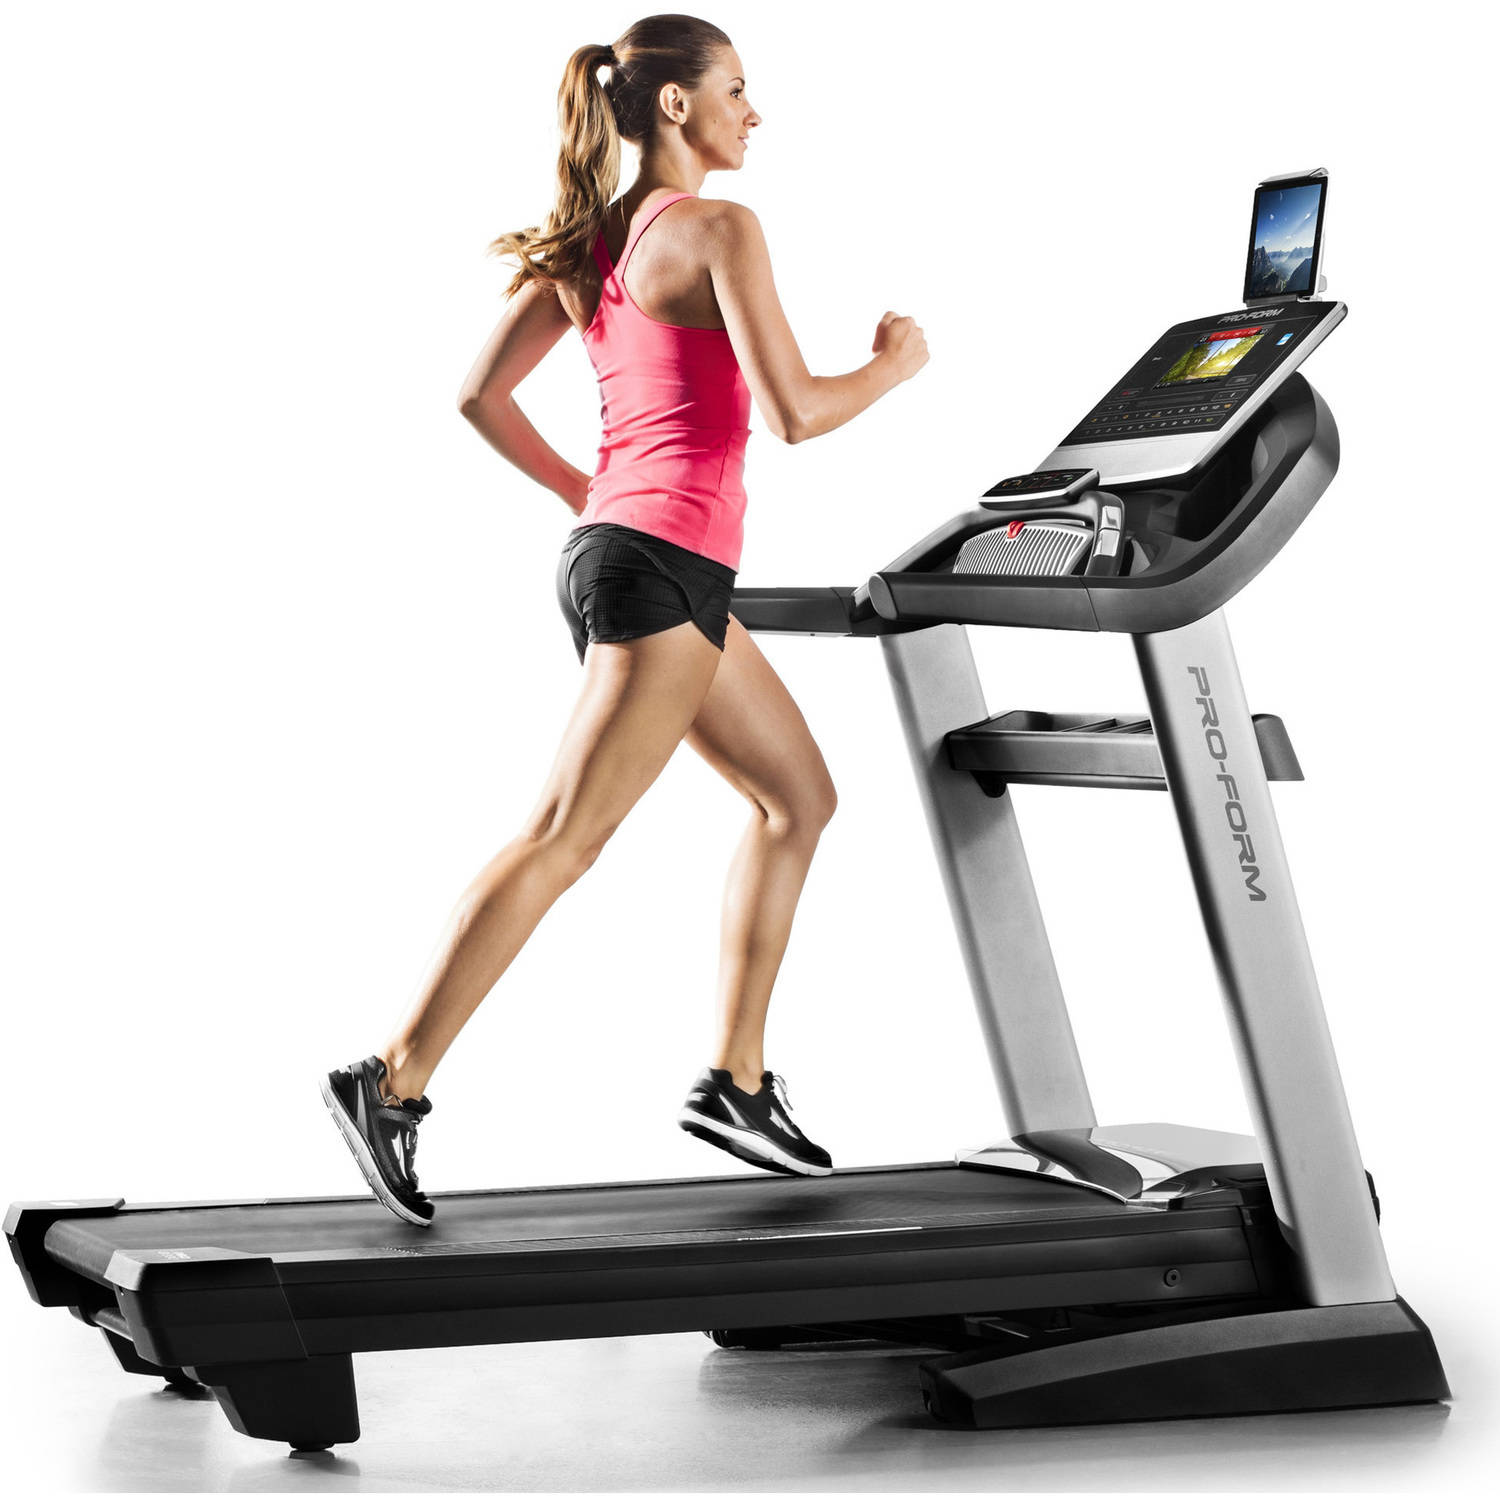 ProForm SMART Pro 9000 Treadmill, Includes 1 Year of Personal Training in Your Home